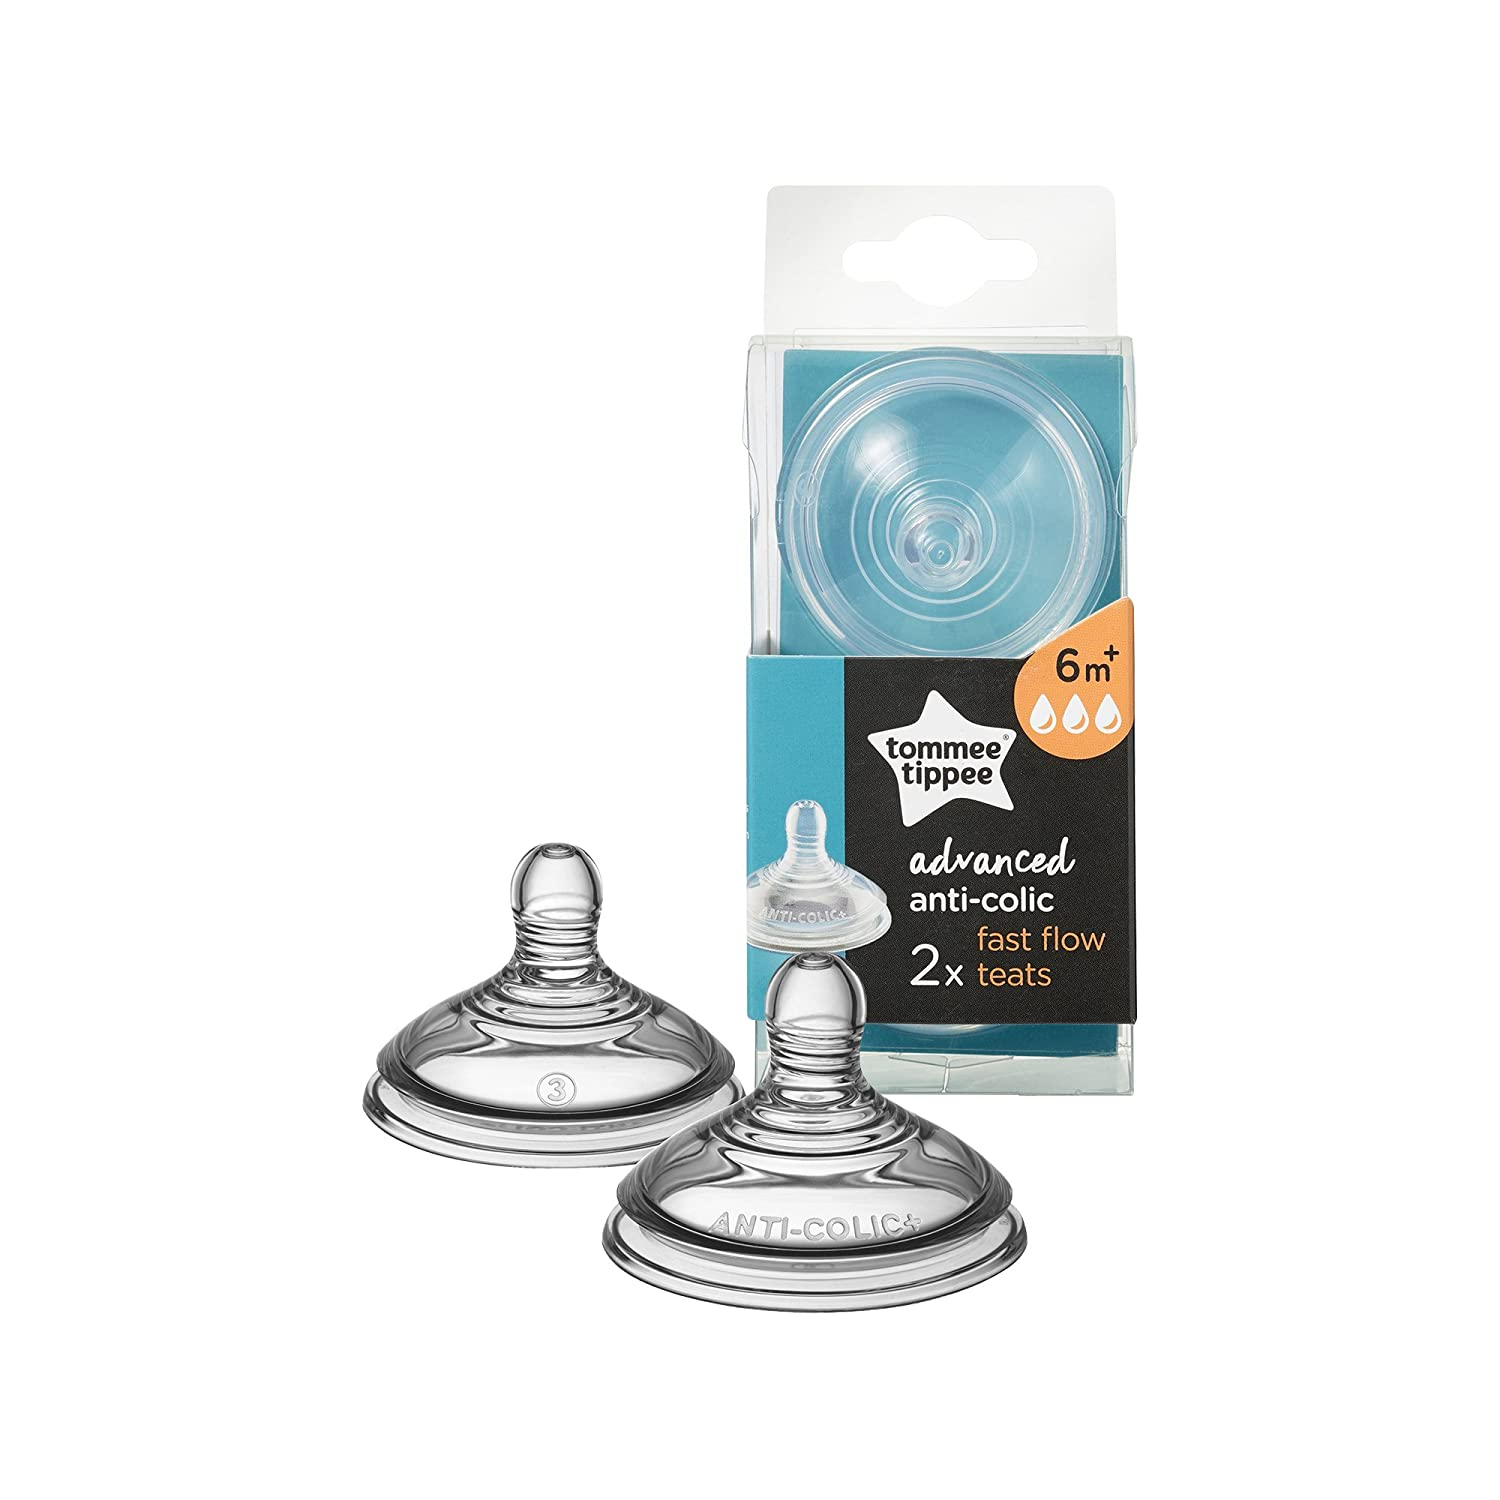 Tommee Tippee Advanced Anti-Colic Fast Flow Teats 2 Count